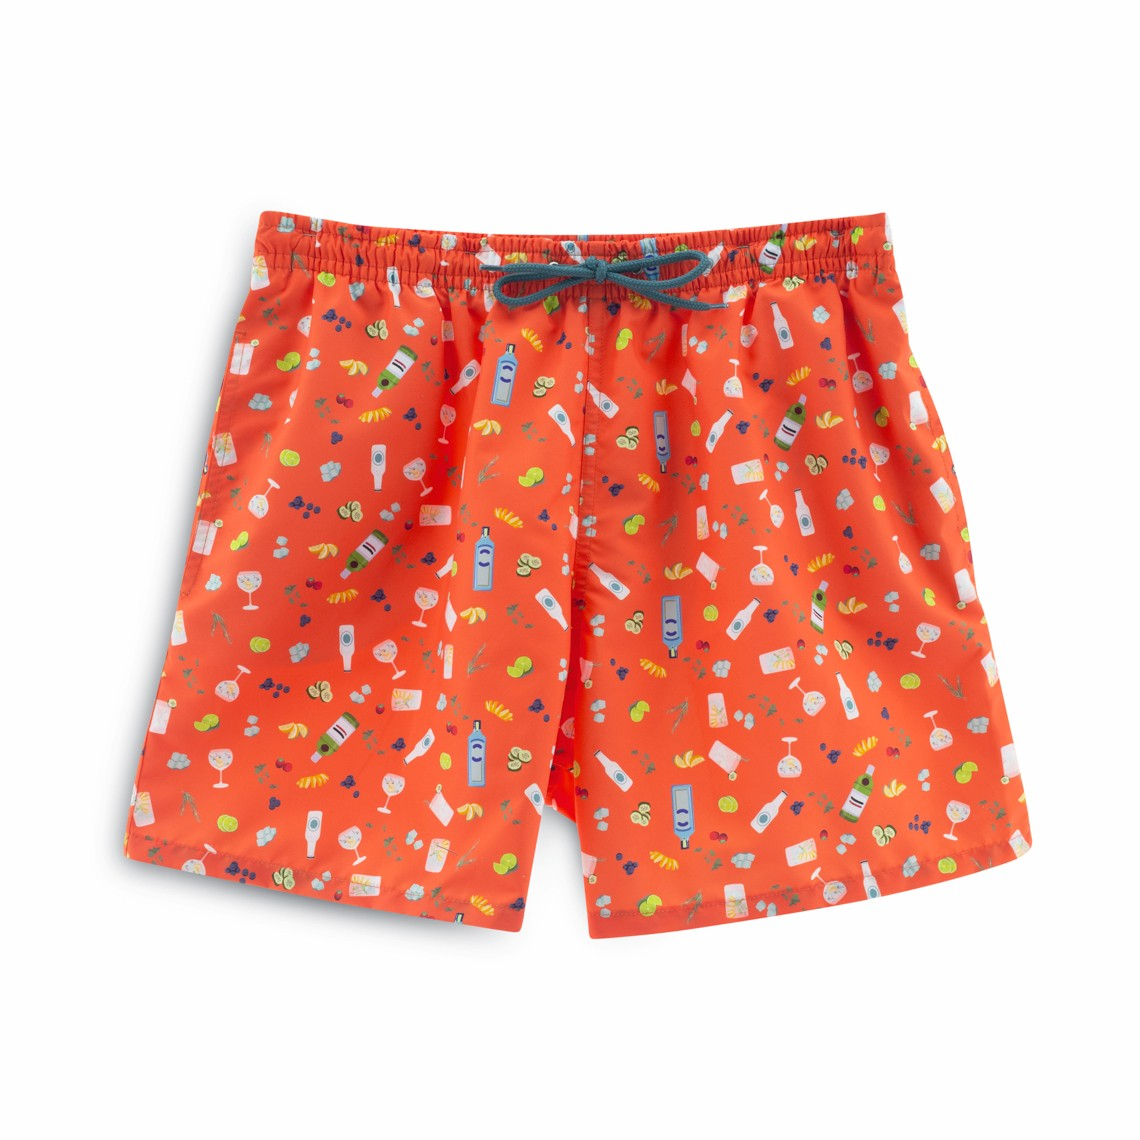 Soft Butt Limited Edition Coral Gin and Tonic Swim Short